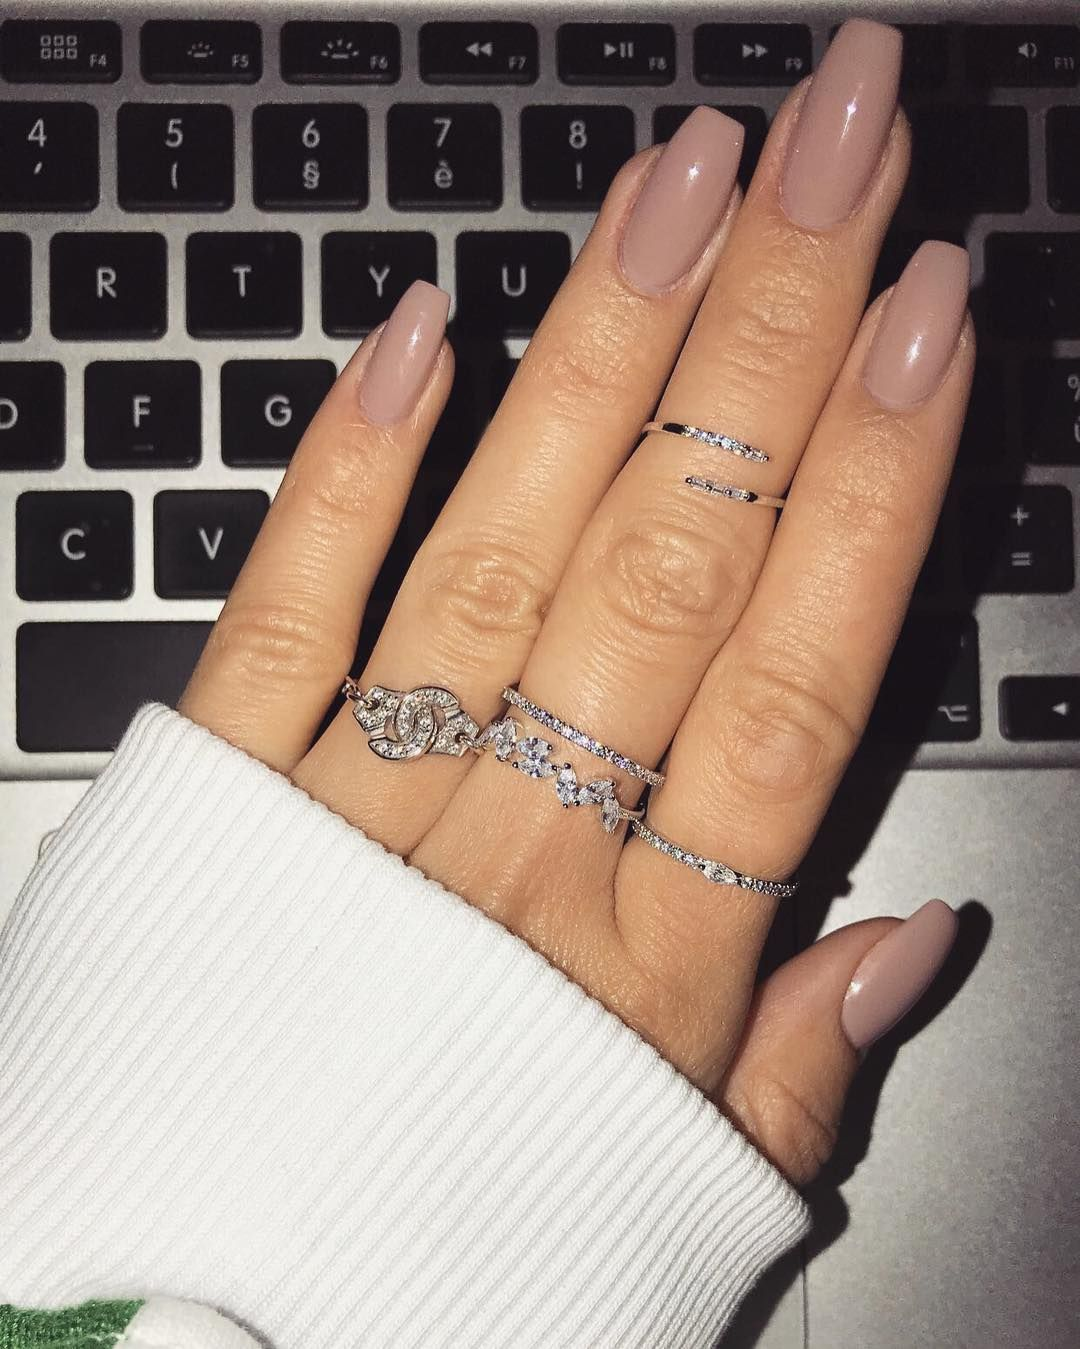 I like the stackable rings, the fact that they are silver, and a little glitzy but not too bad.